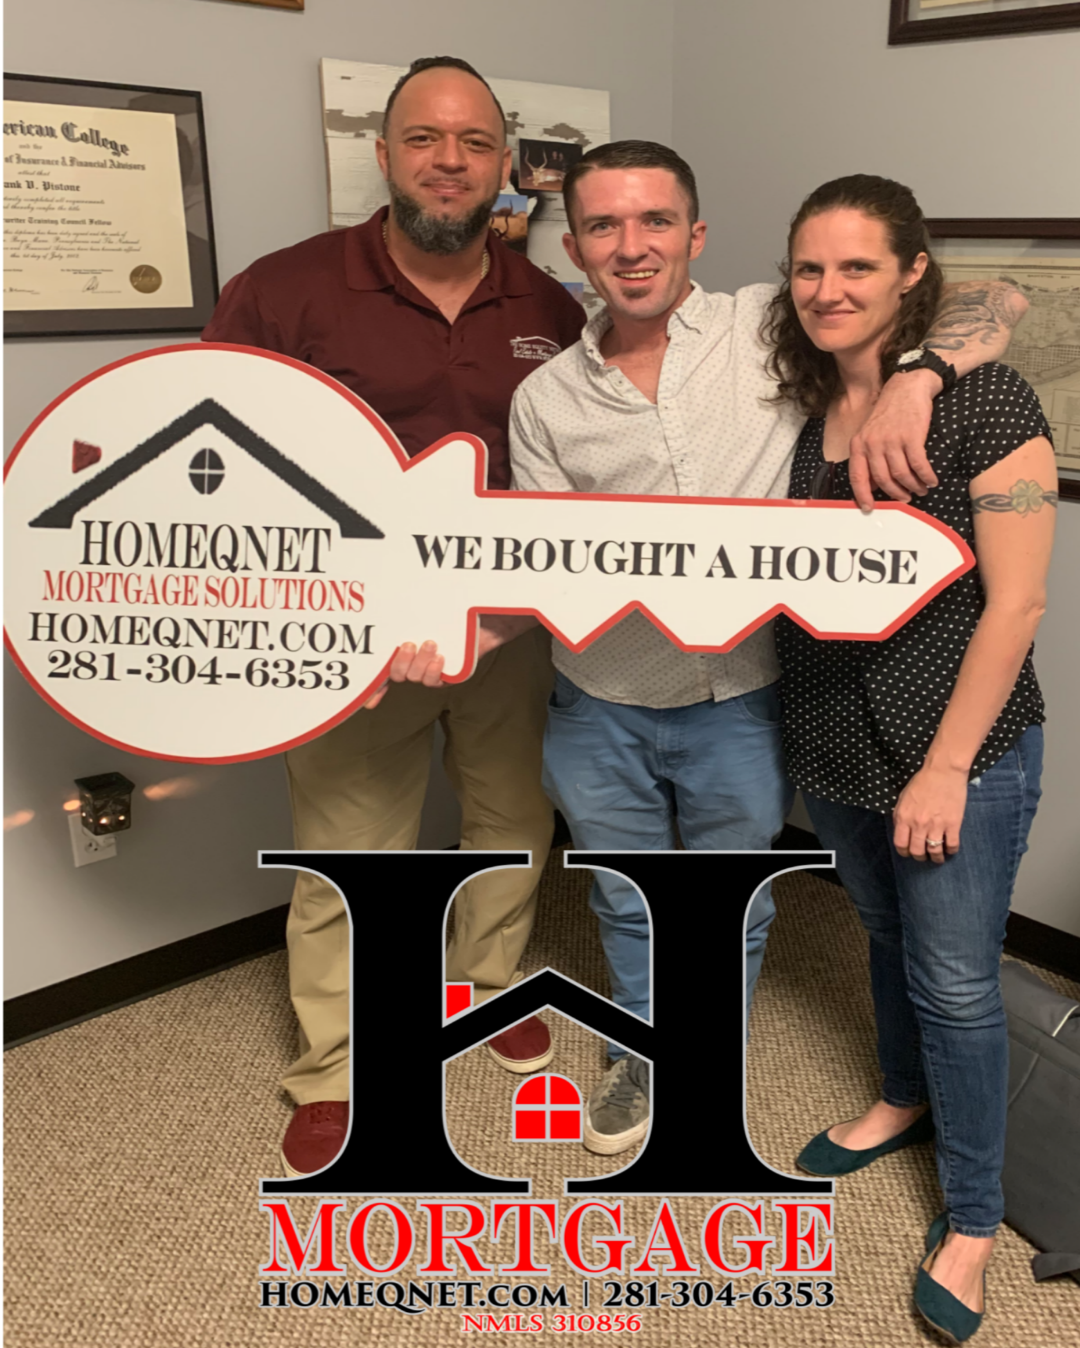 Congratulations To The Eckenfels On Their Home Purchase Thanks